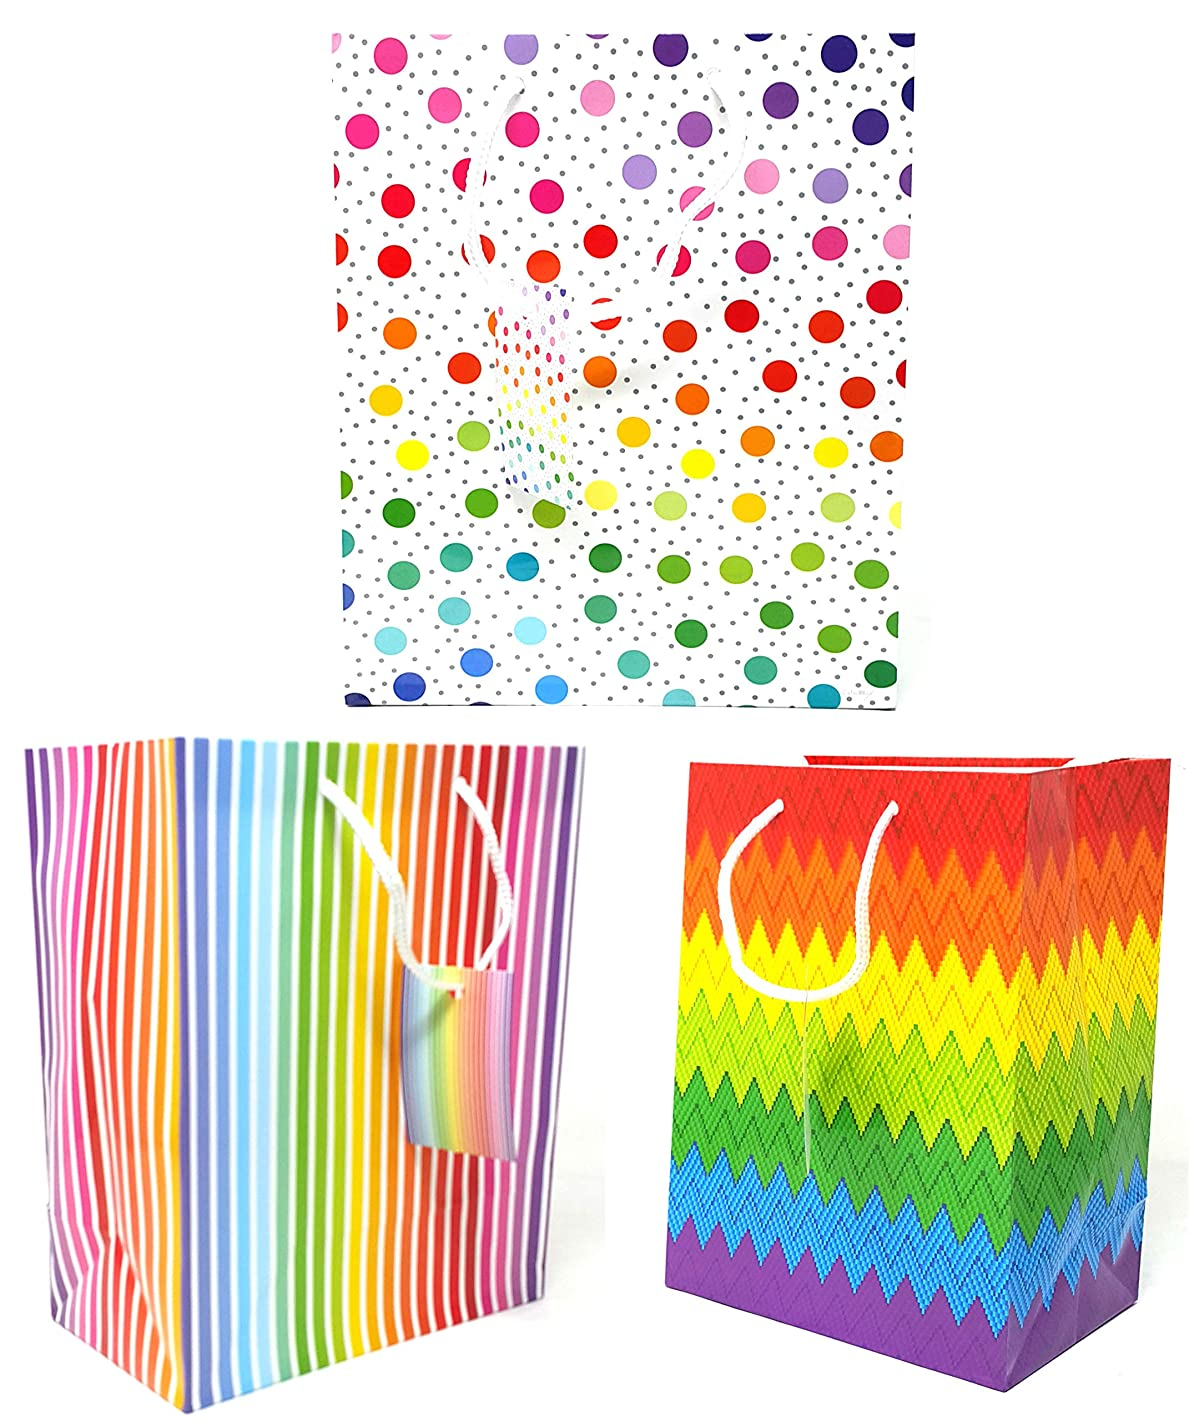 Style Design (TM) Dozen Wine Gift Bags -Great for All Your Gifts - Assorted Designs (Colorful, Wine)